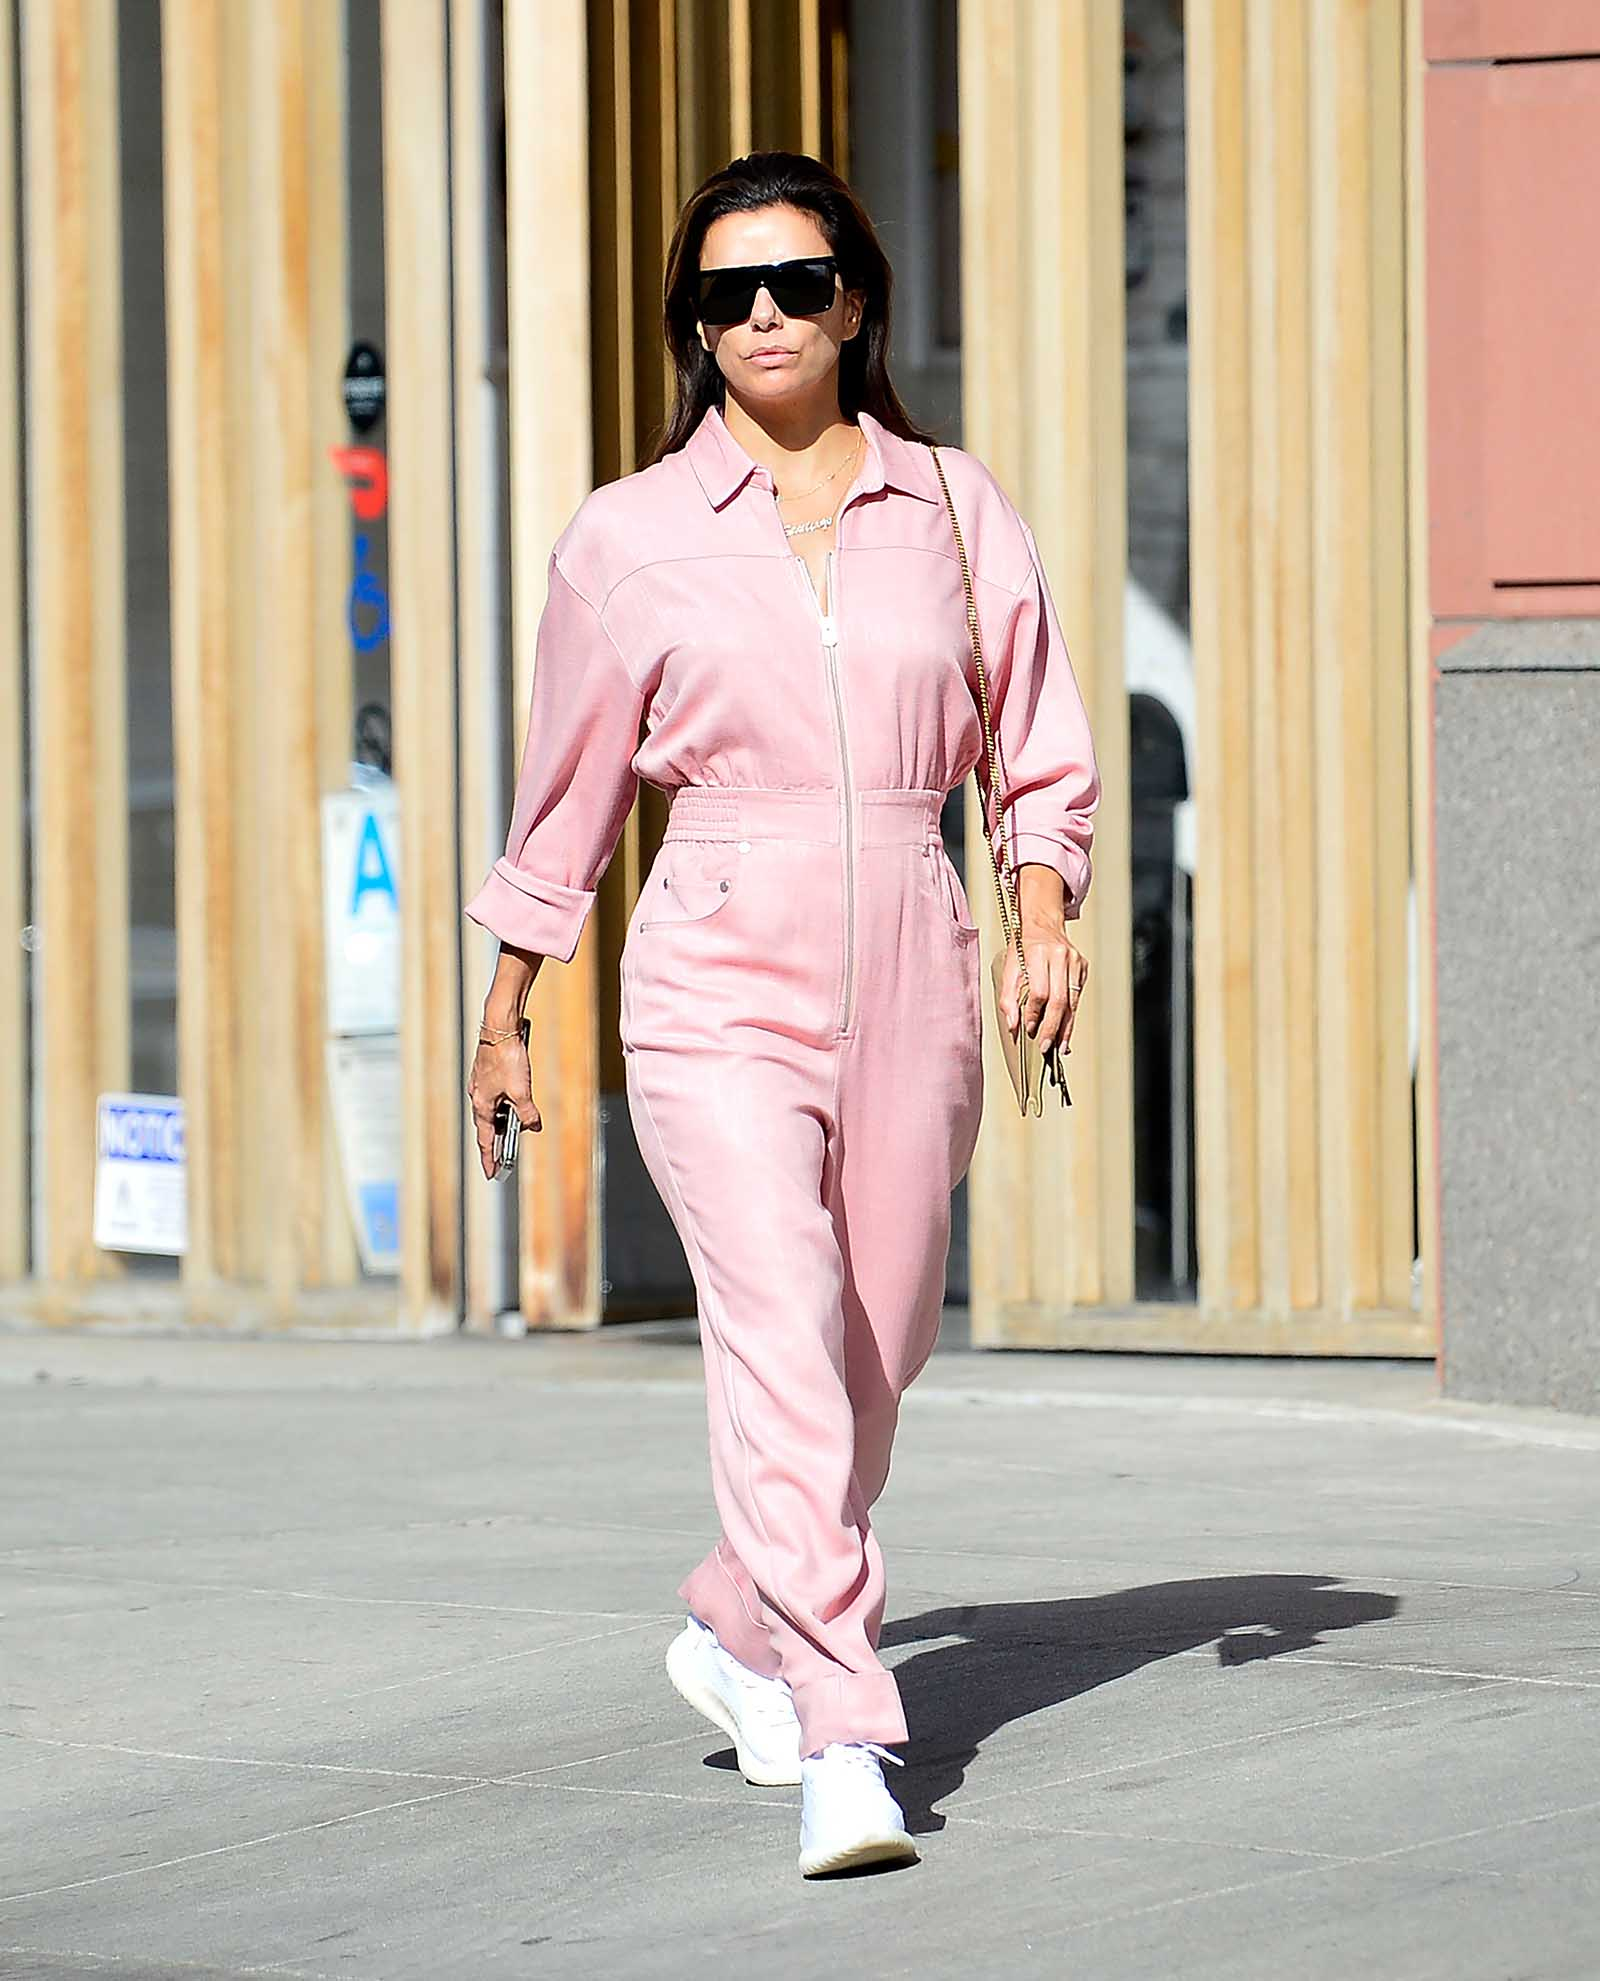 Eva is chic in pink!